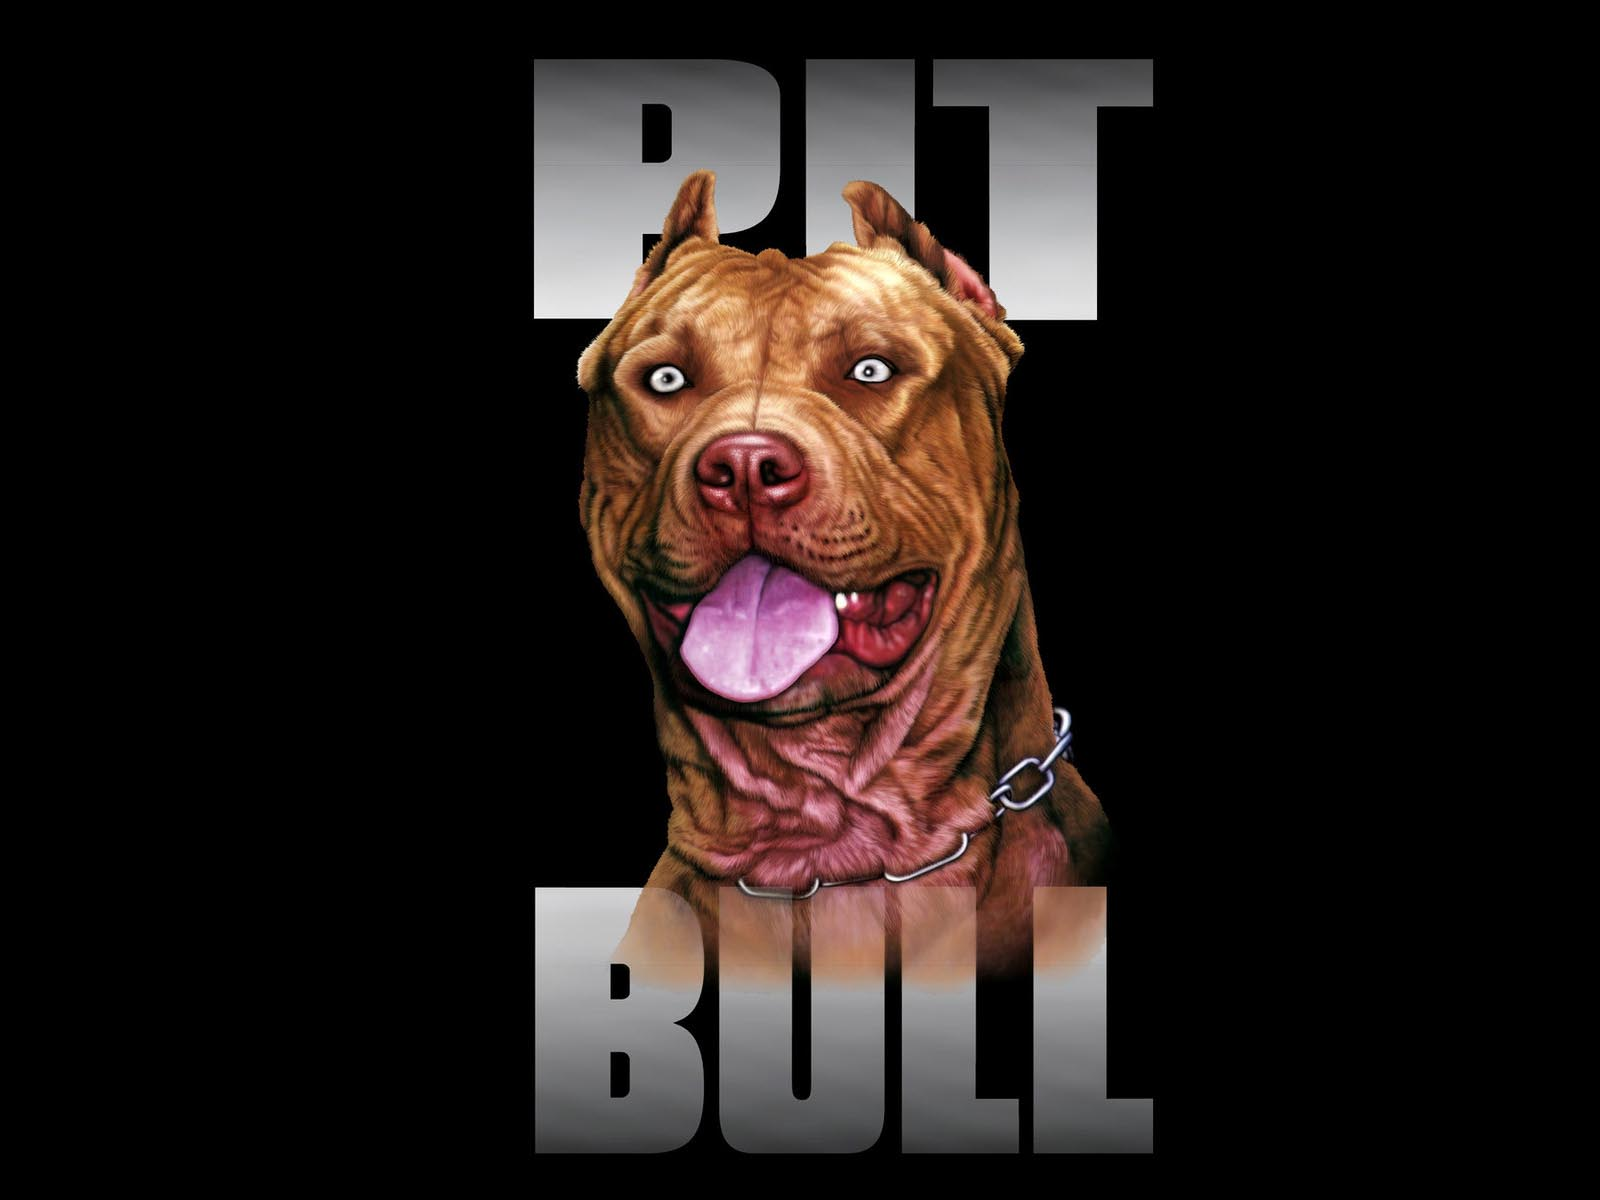 Pit Bull Wallpaper For Computer